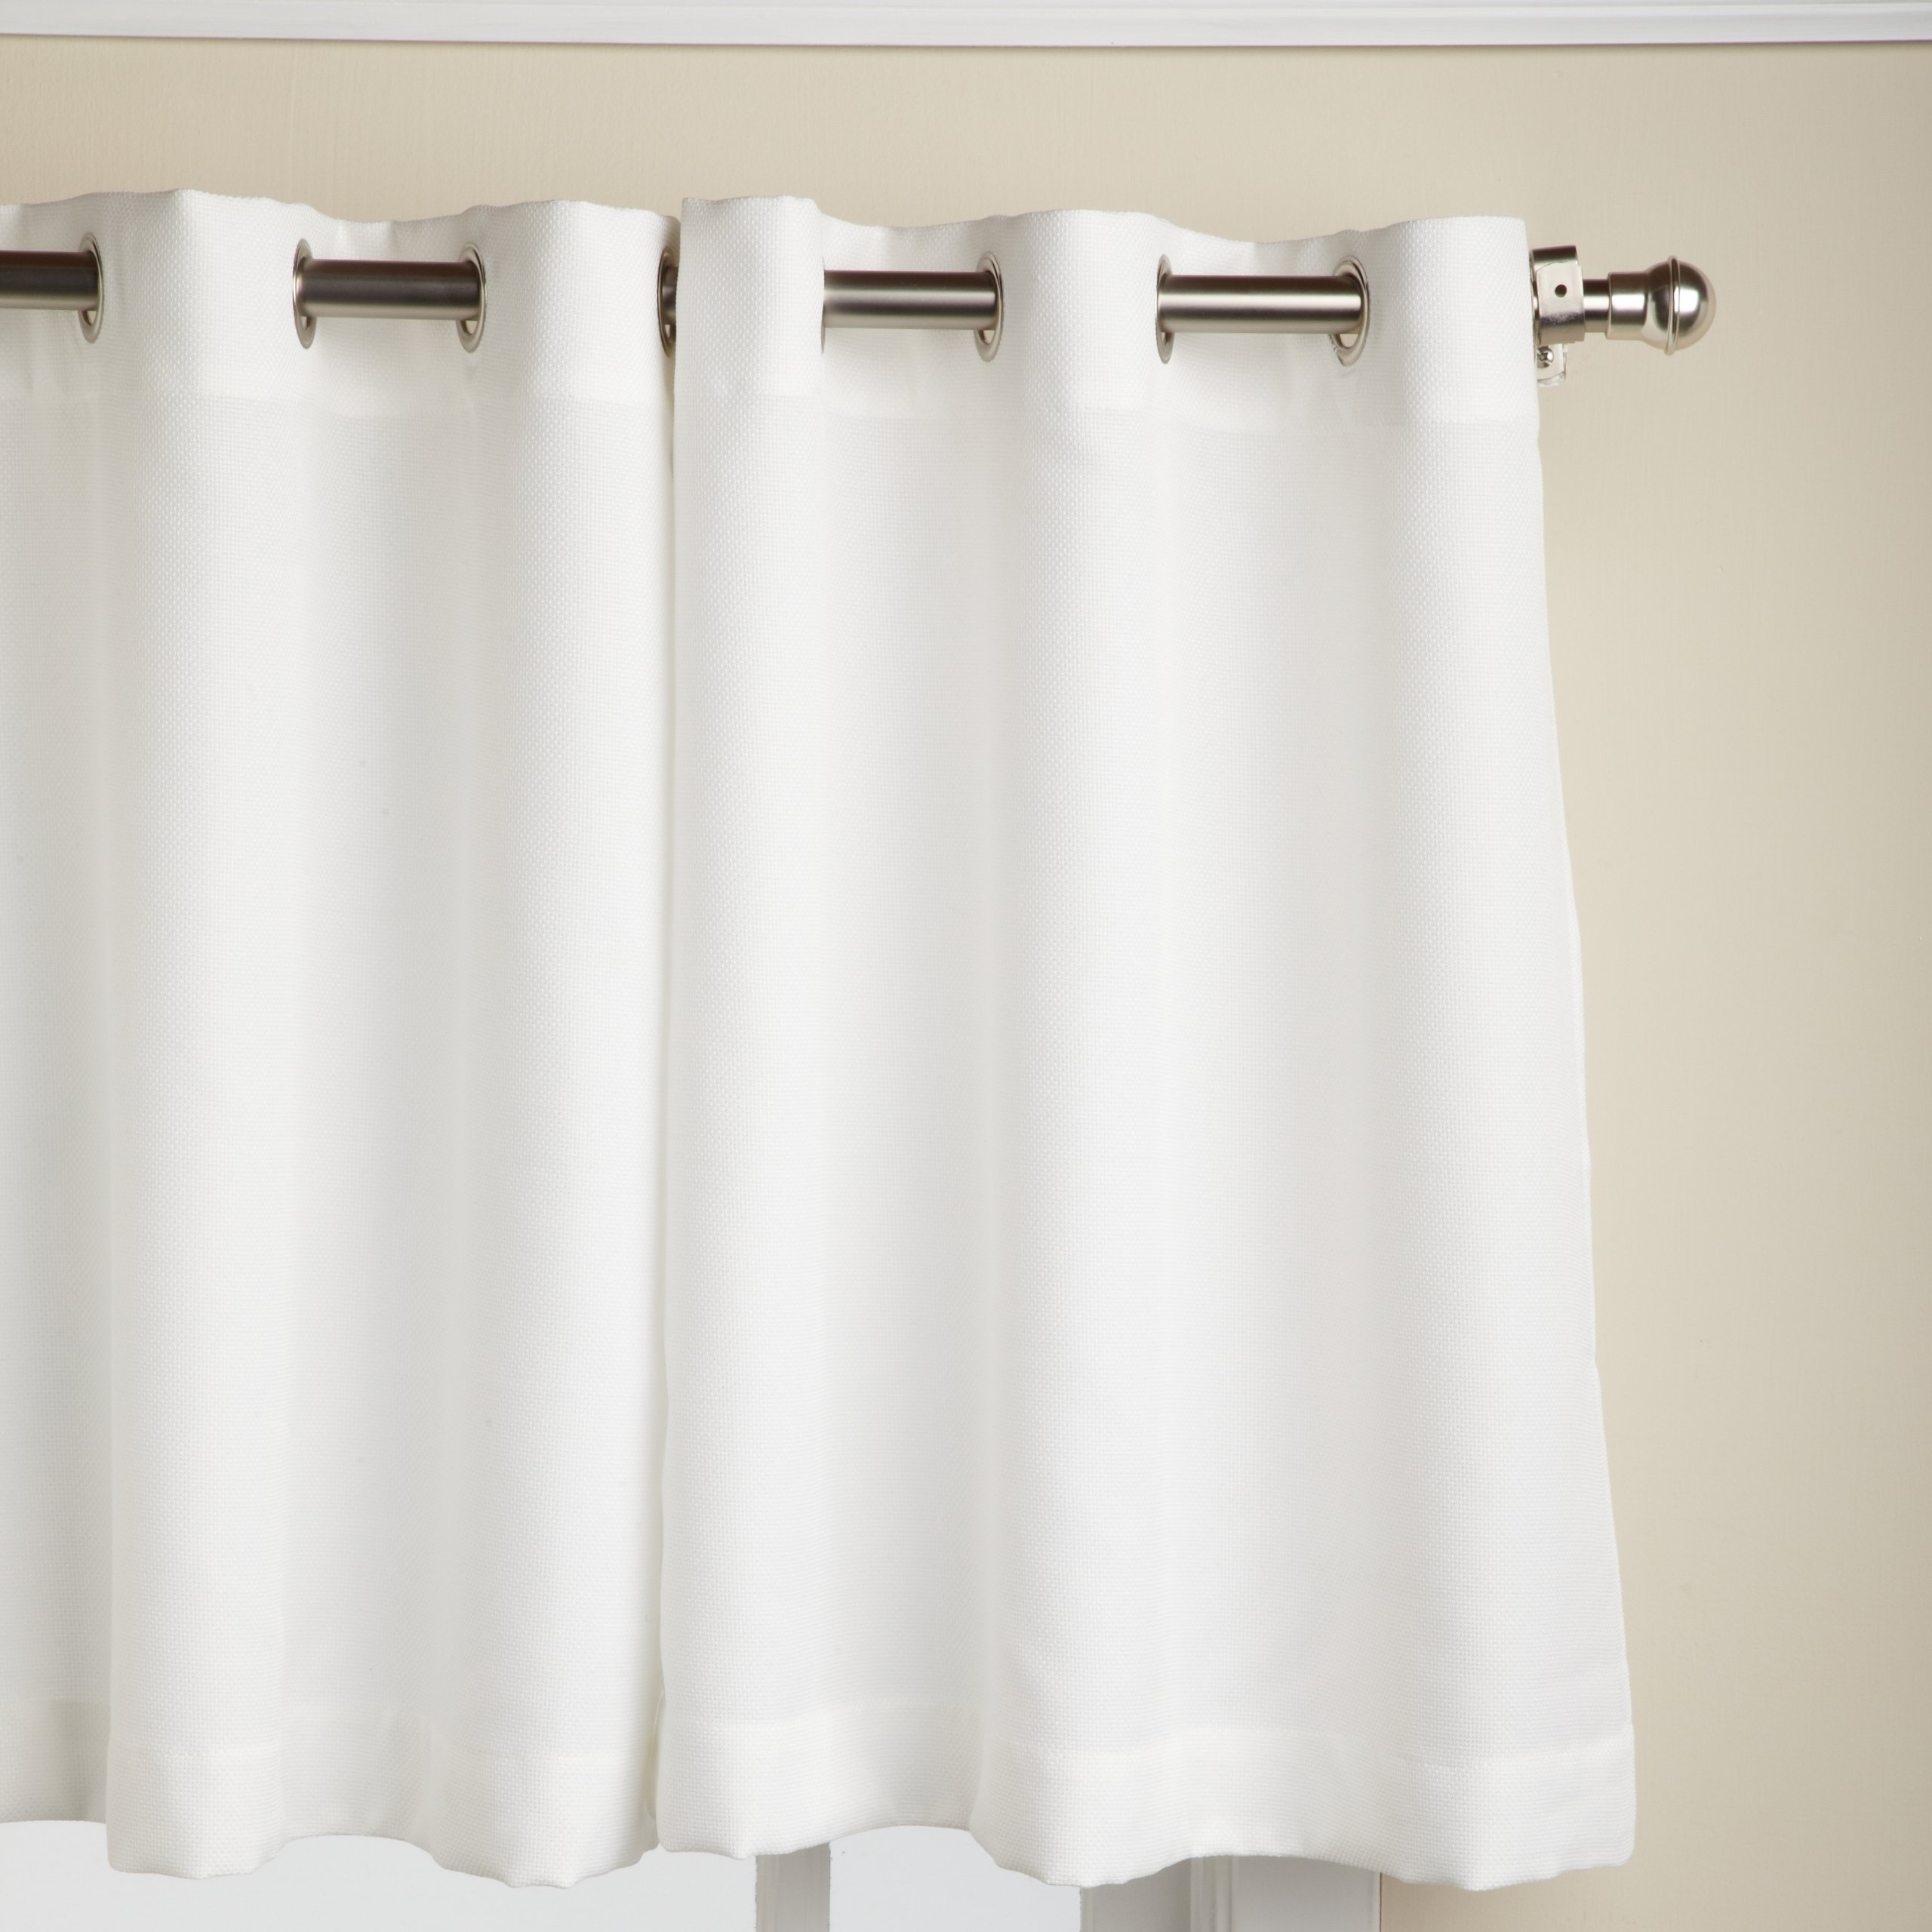 Lorraine Home Fashions Jackson 58 Inch X 24 Inch Tier Curtain Pair, White